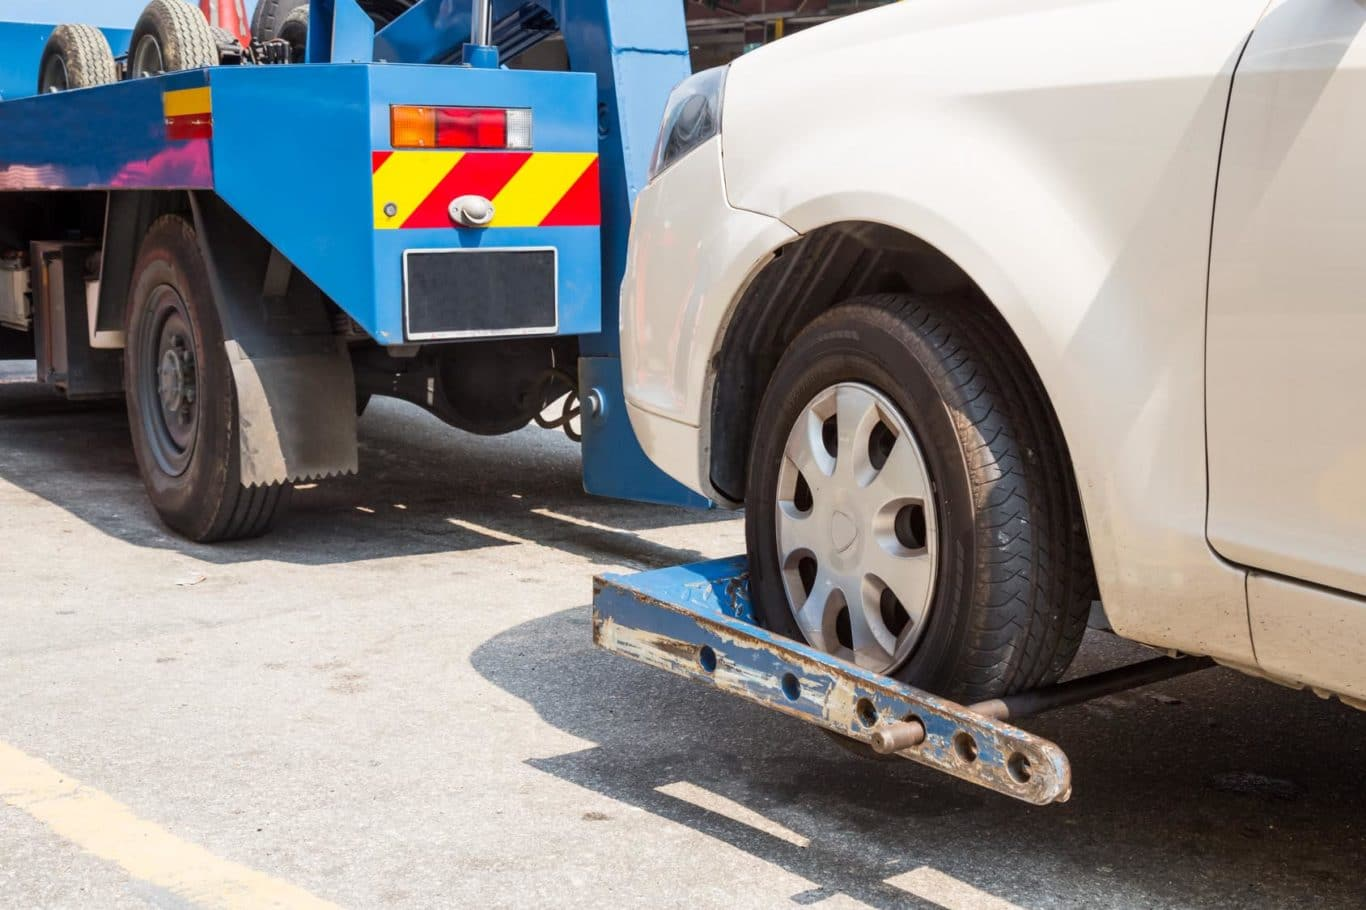 Celbridge expert Car Towing services